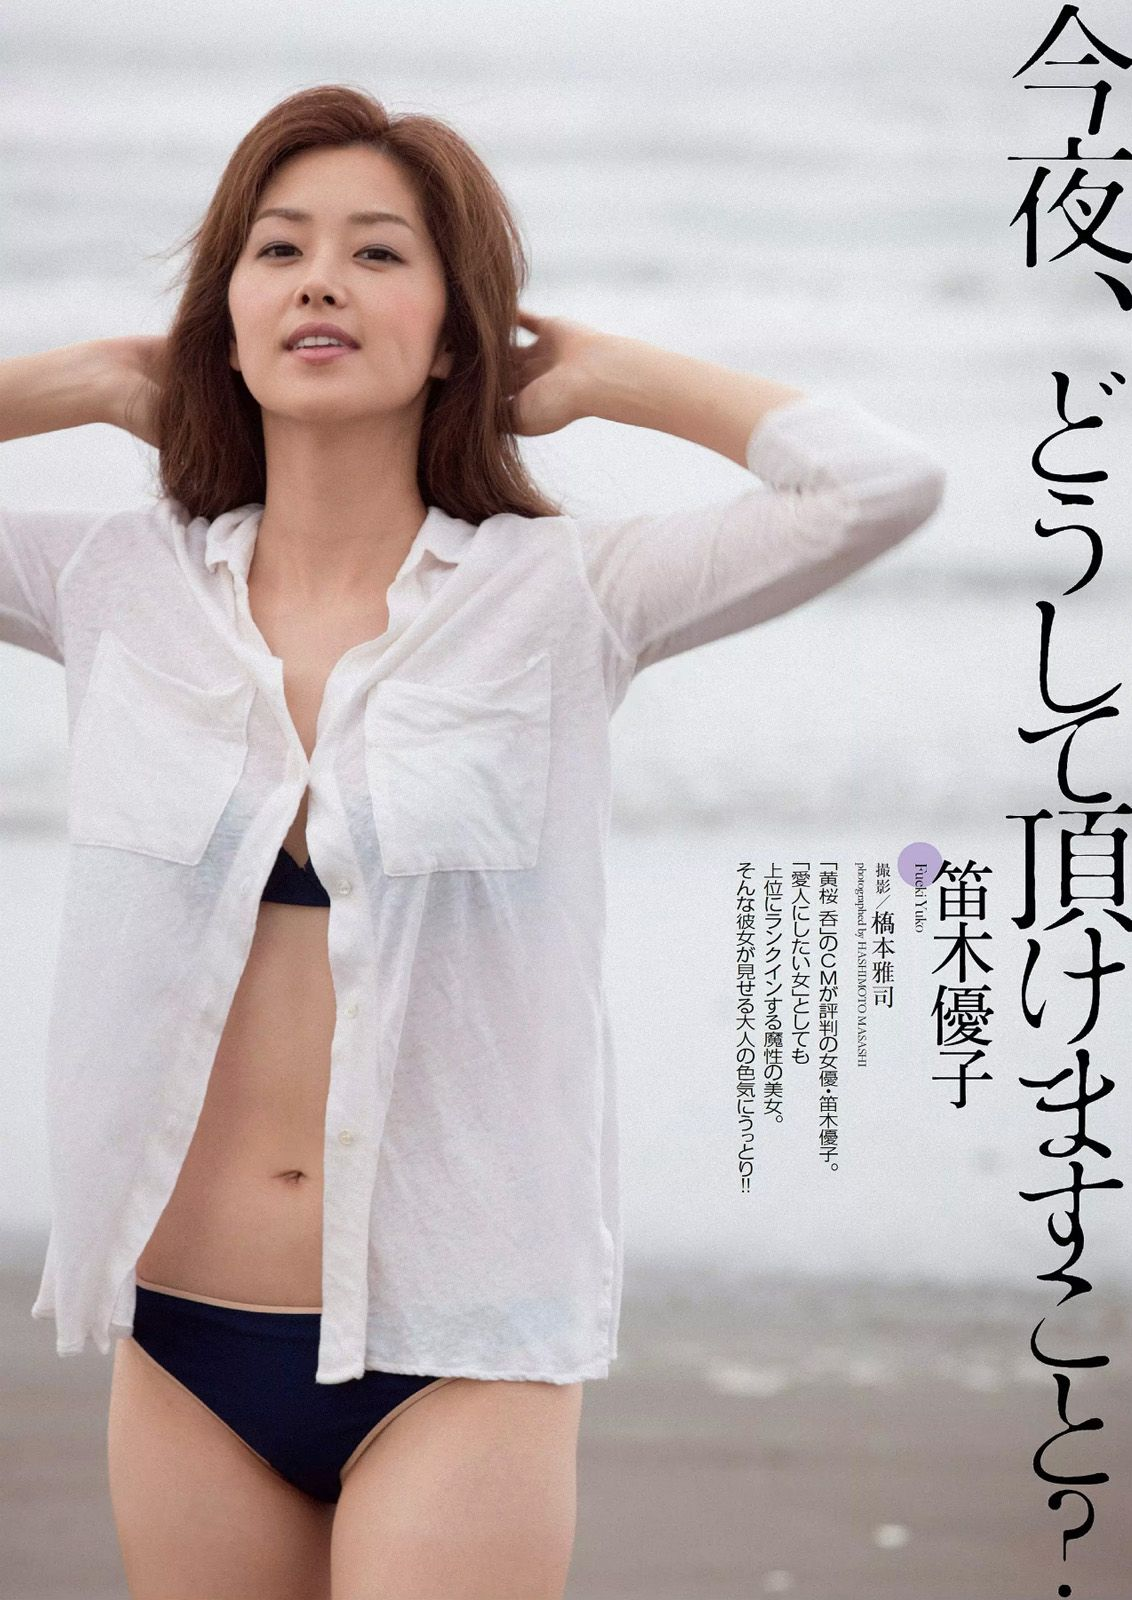 Watch Yuko Fueki video